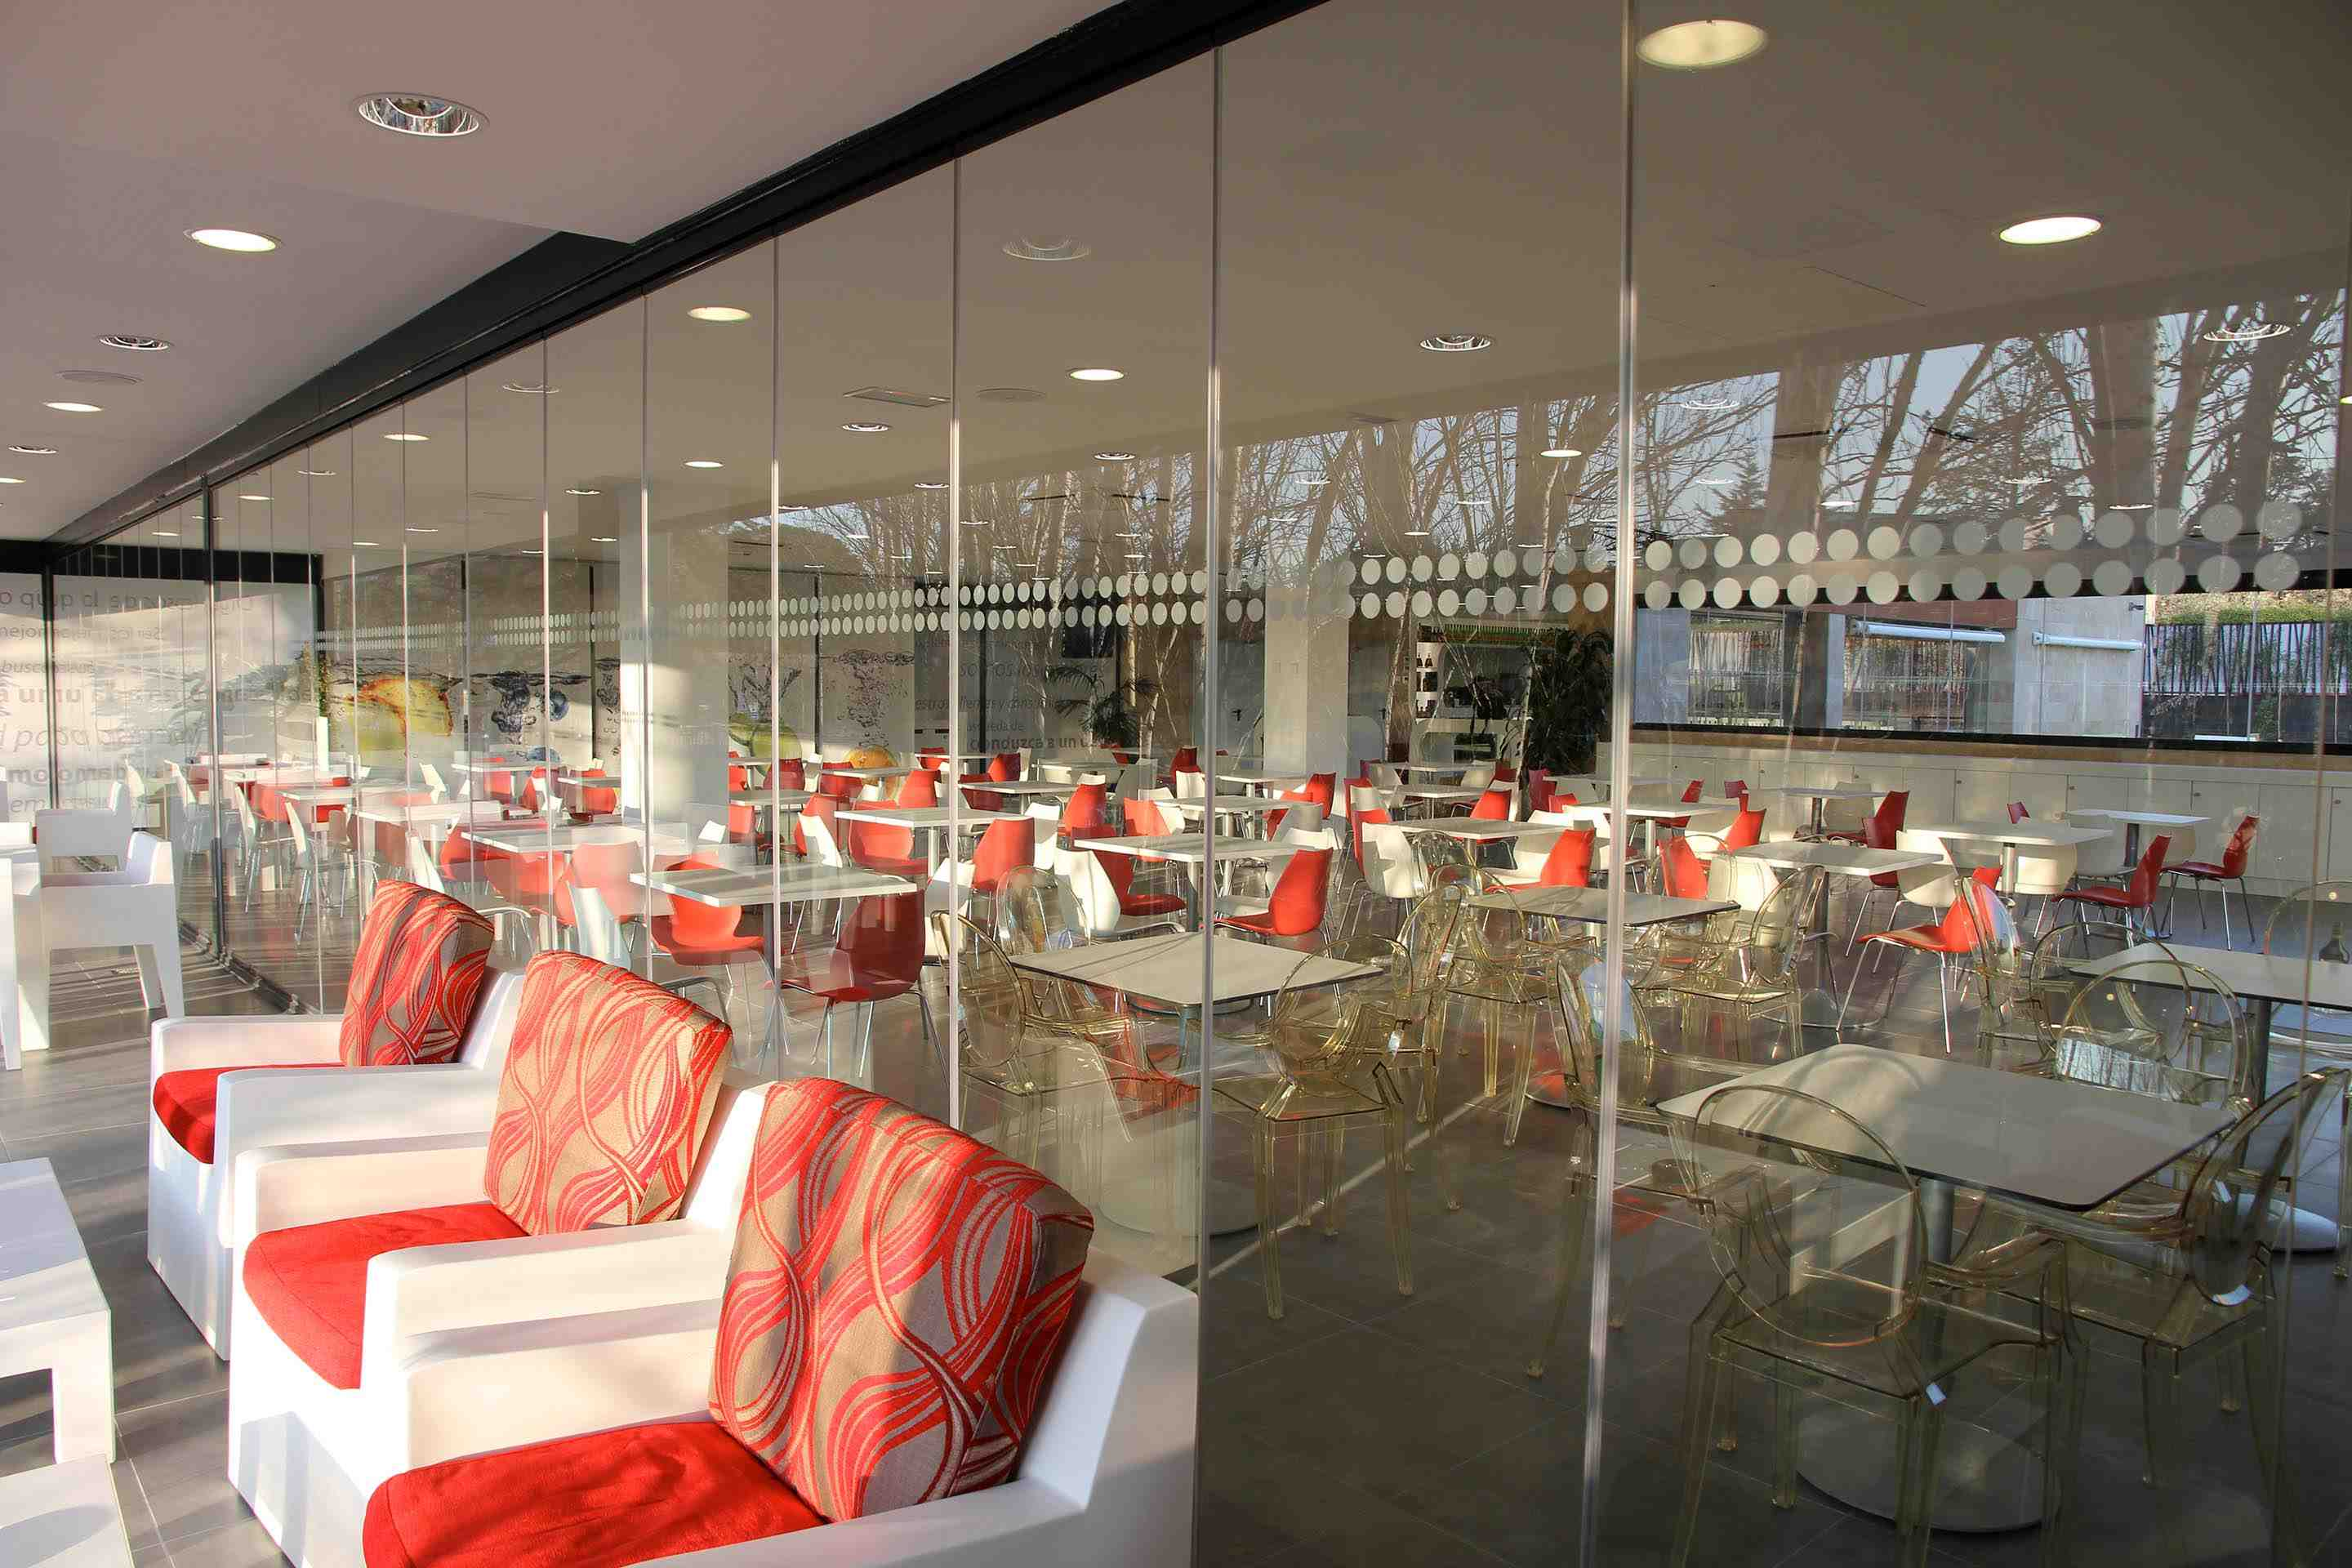 Restaurants with Lumon enclosure